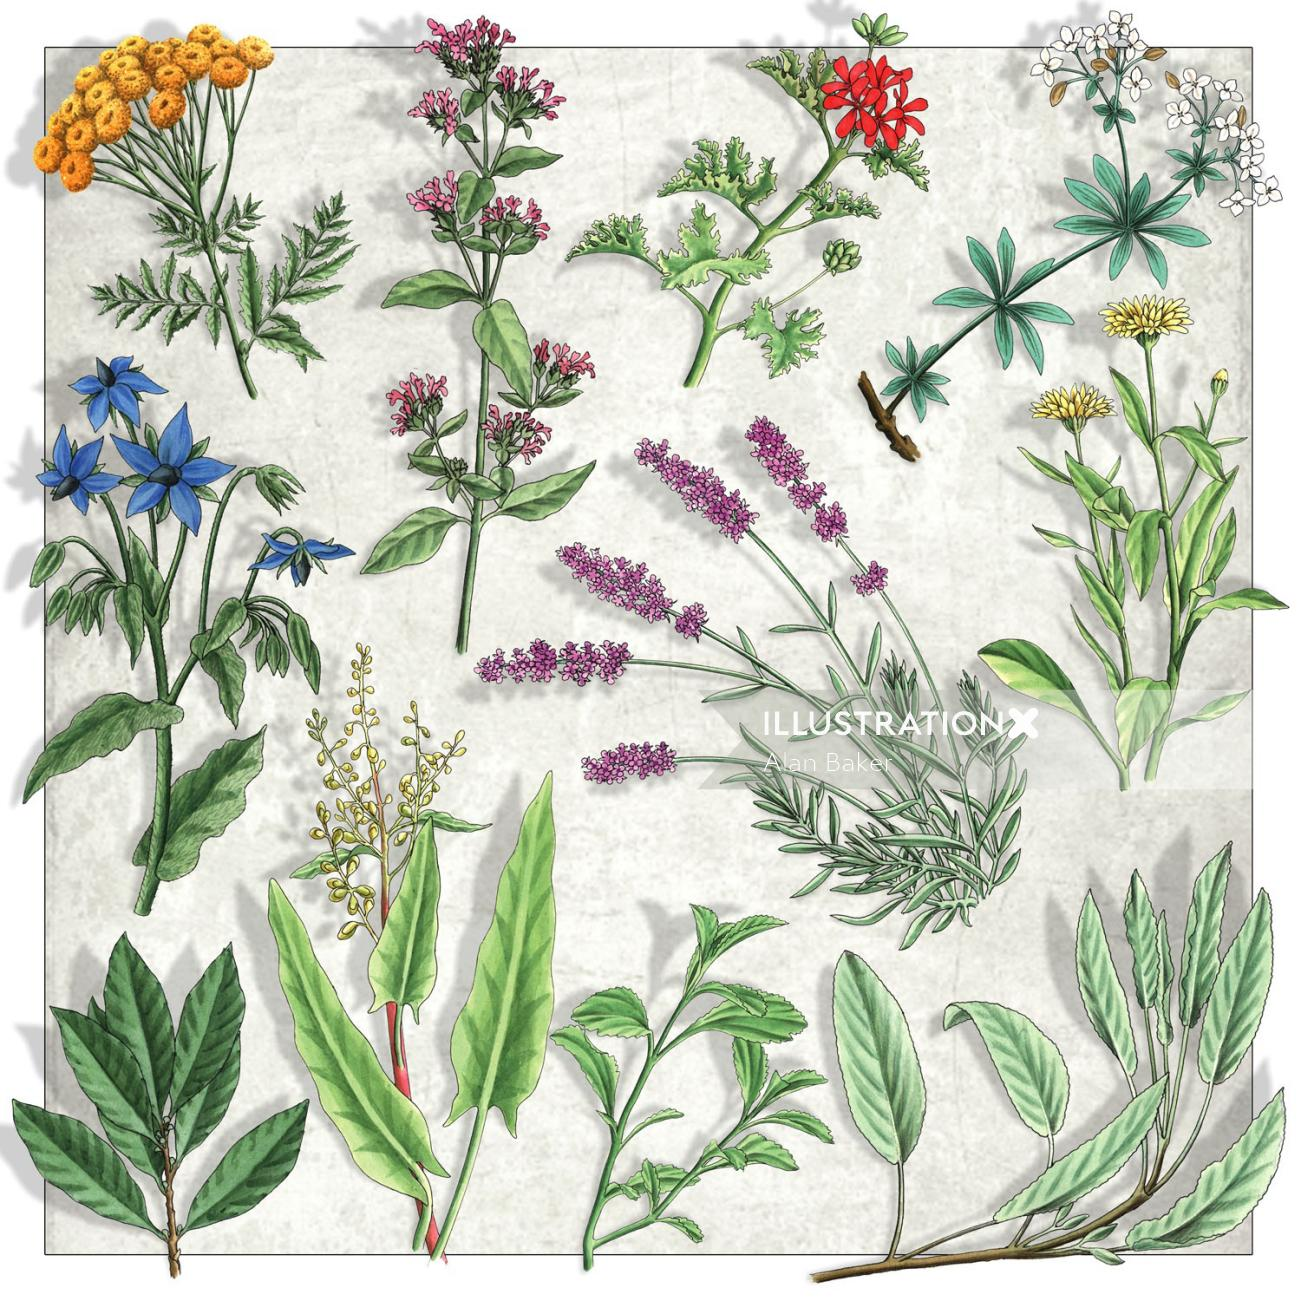 Illustration of Botanical plants and flowers